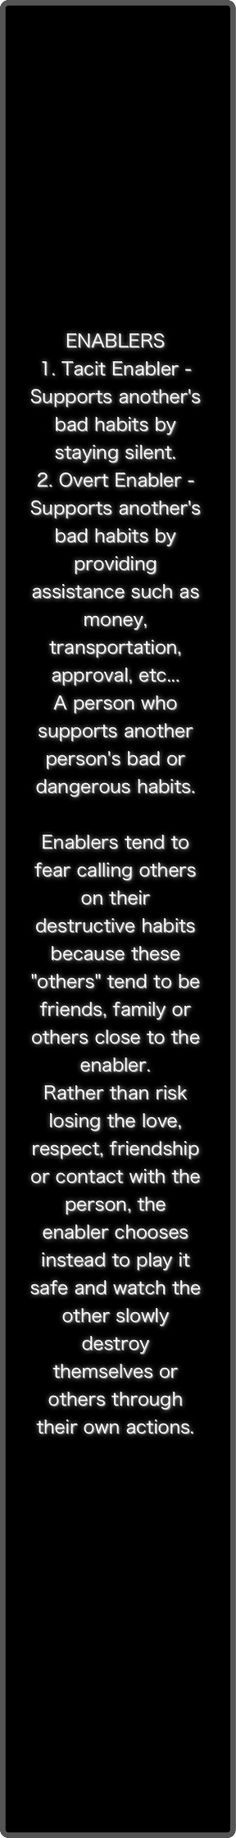 Enablers...very interesting!  I can think of a few!